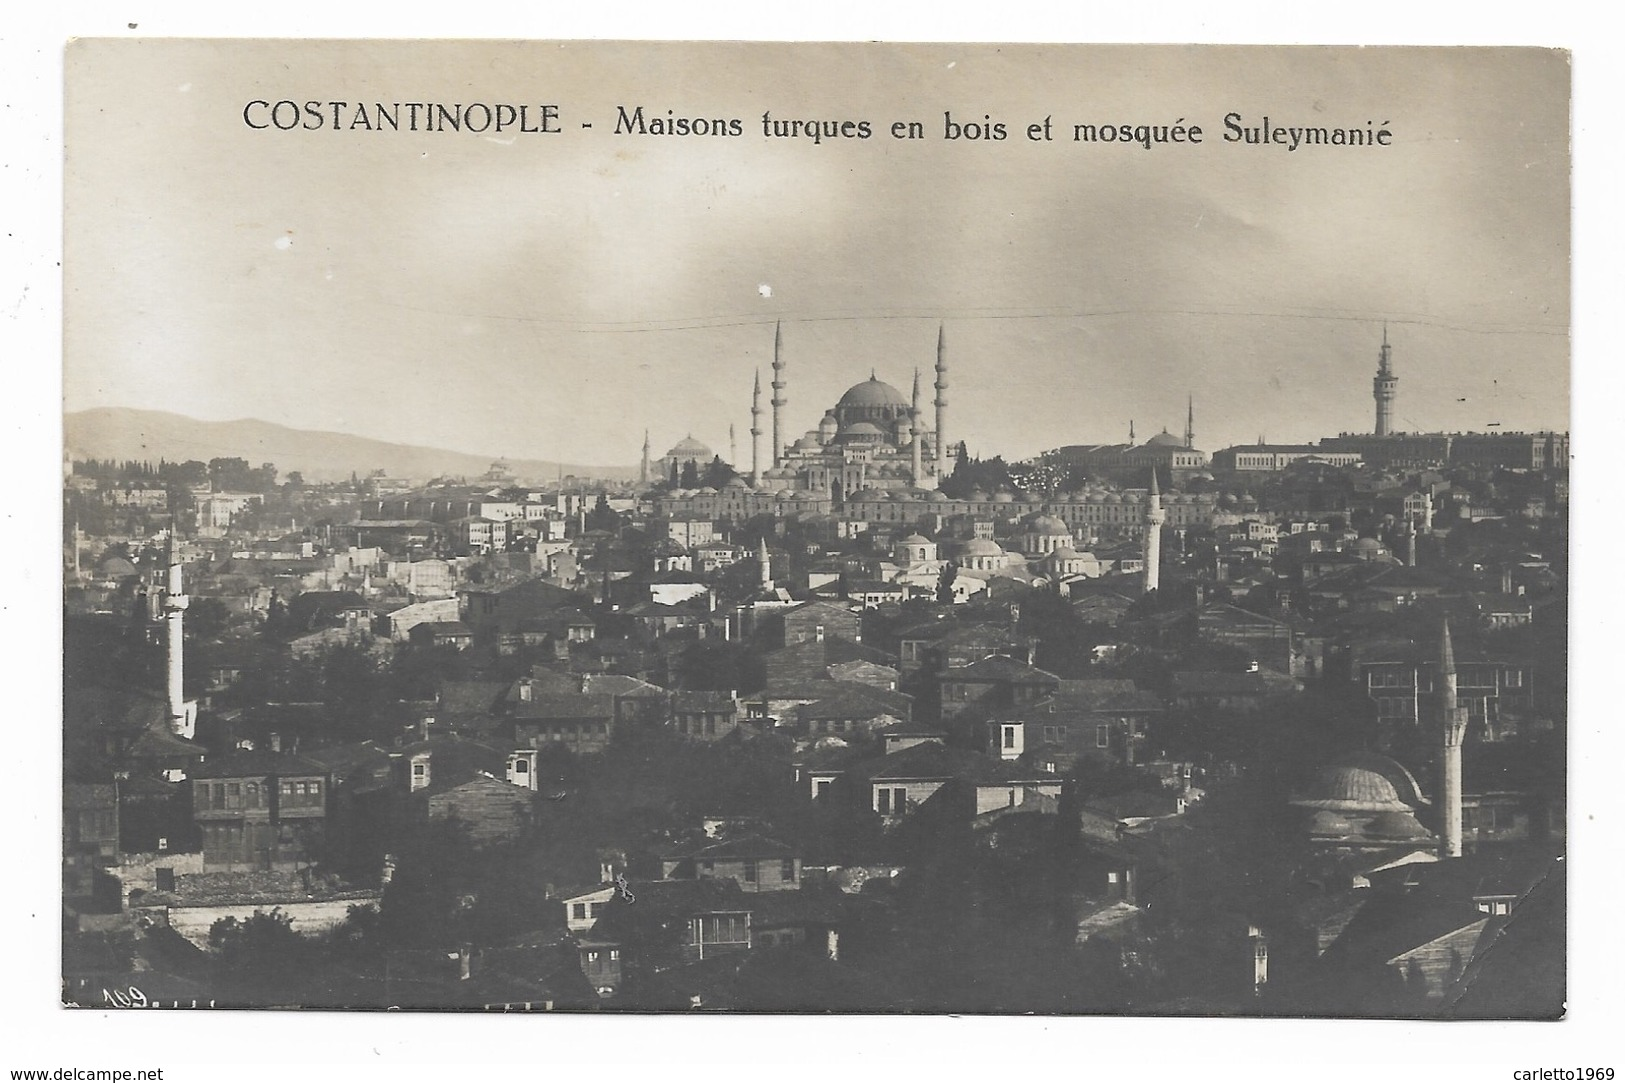 COSTANTINOPLE - MAISONS TURQUES EN BOIS ET MOSQUEE SULEYMANIE - NV FP - Turchia